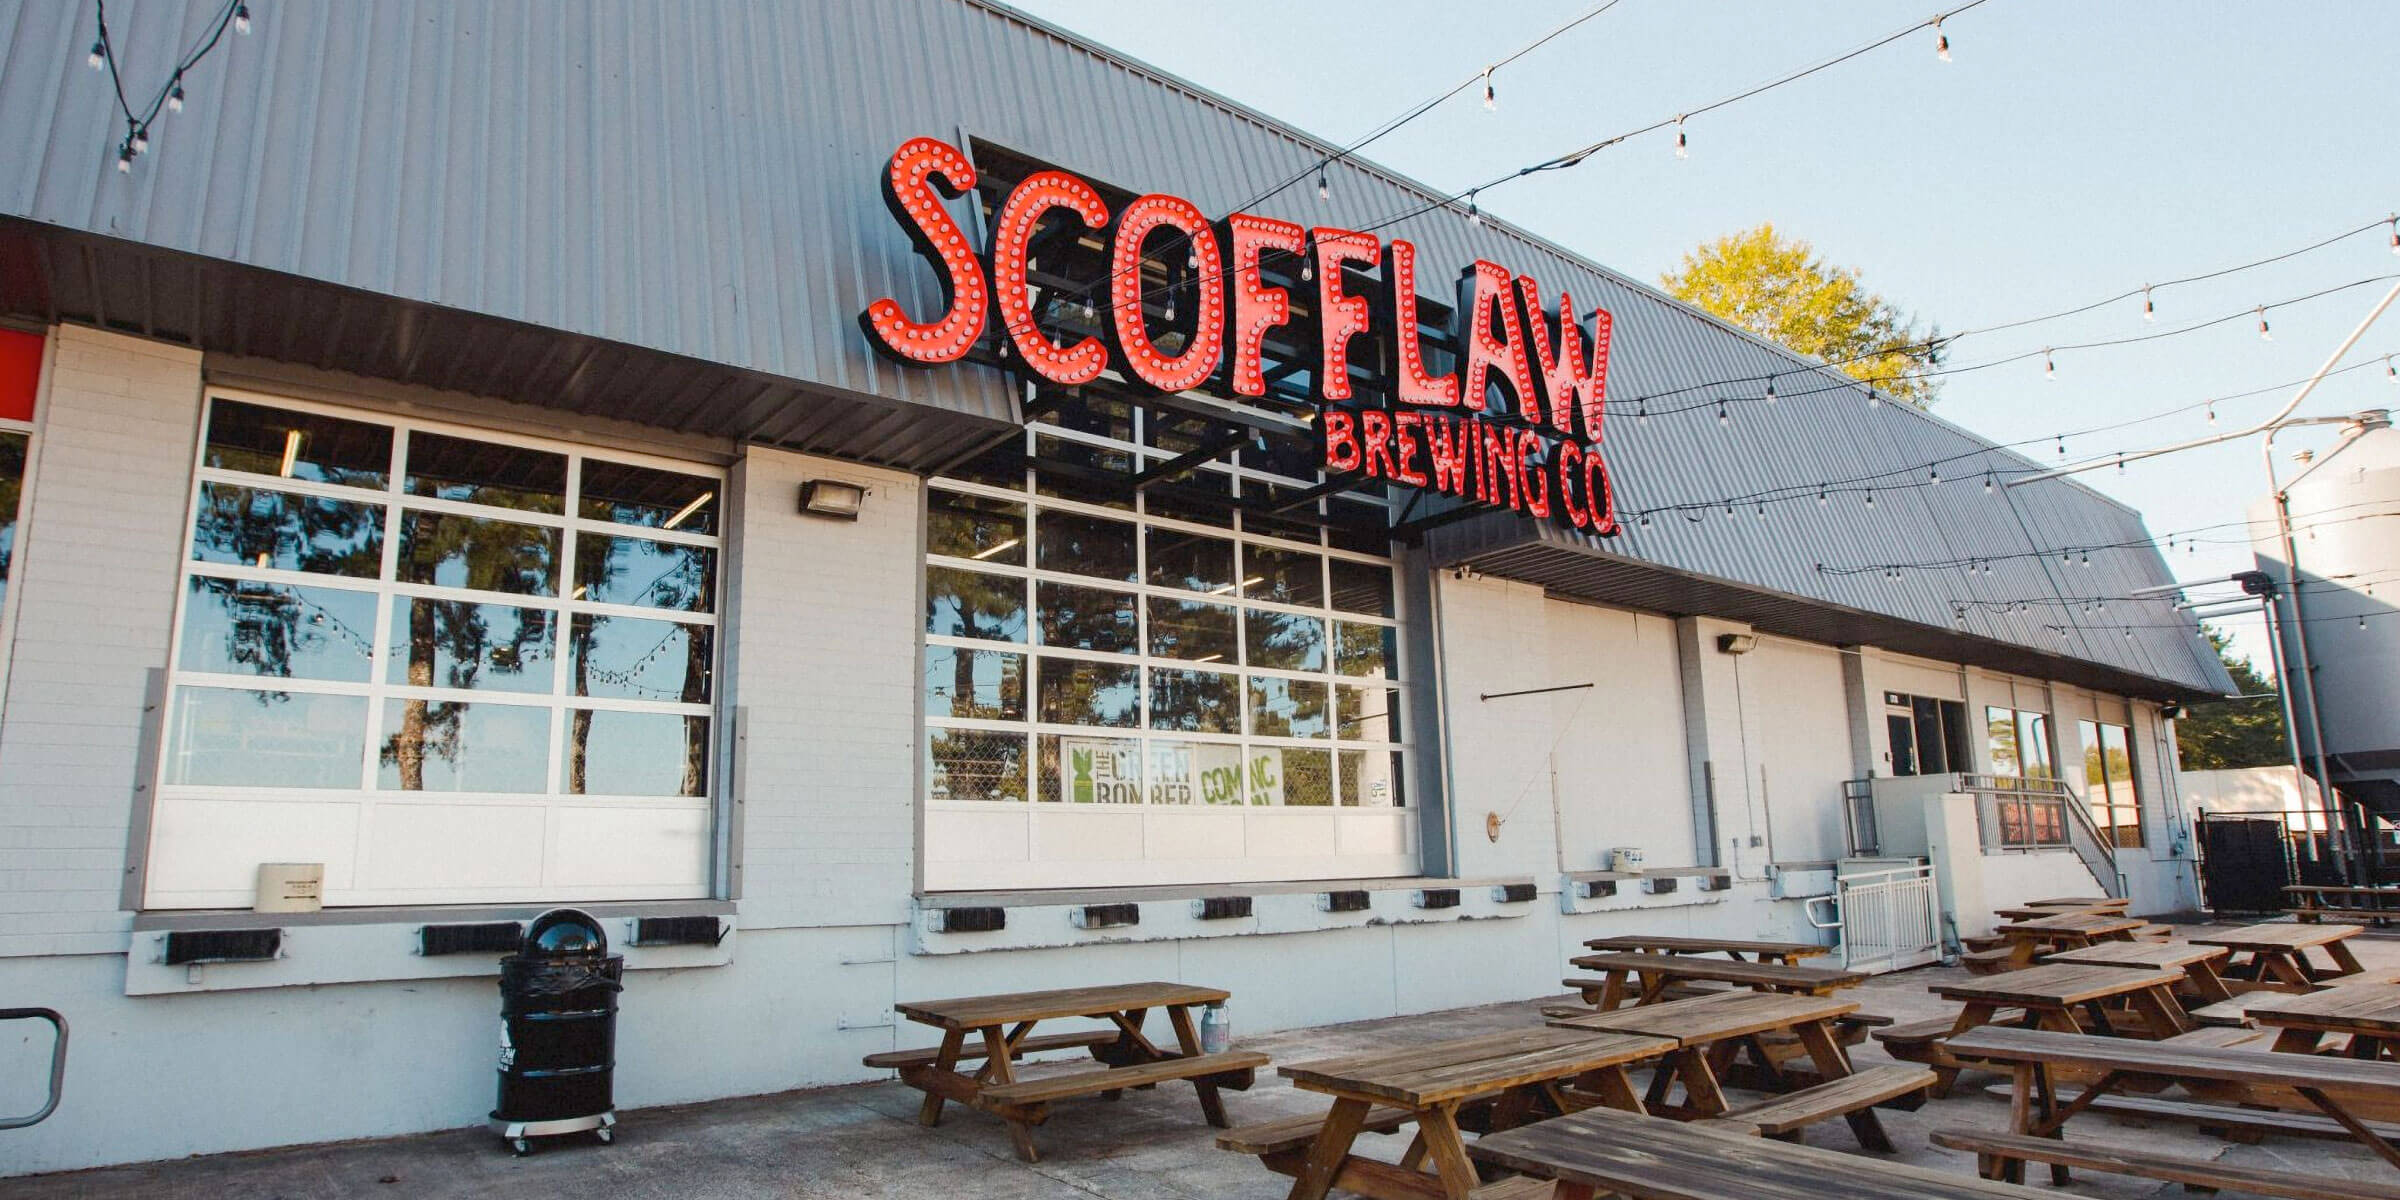 Outside on the patio at Scofflaw Brewing Co. in Atlanta, Georgia